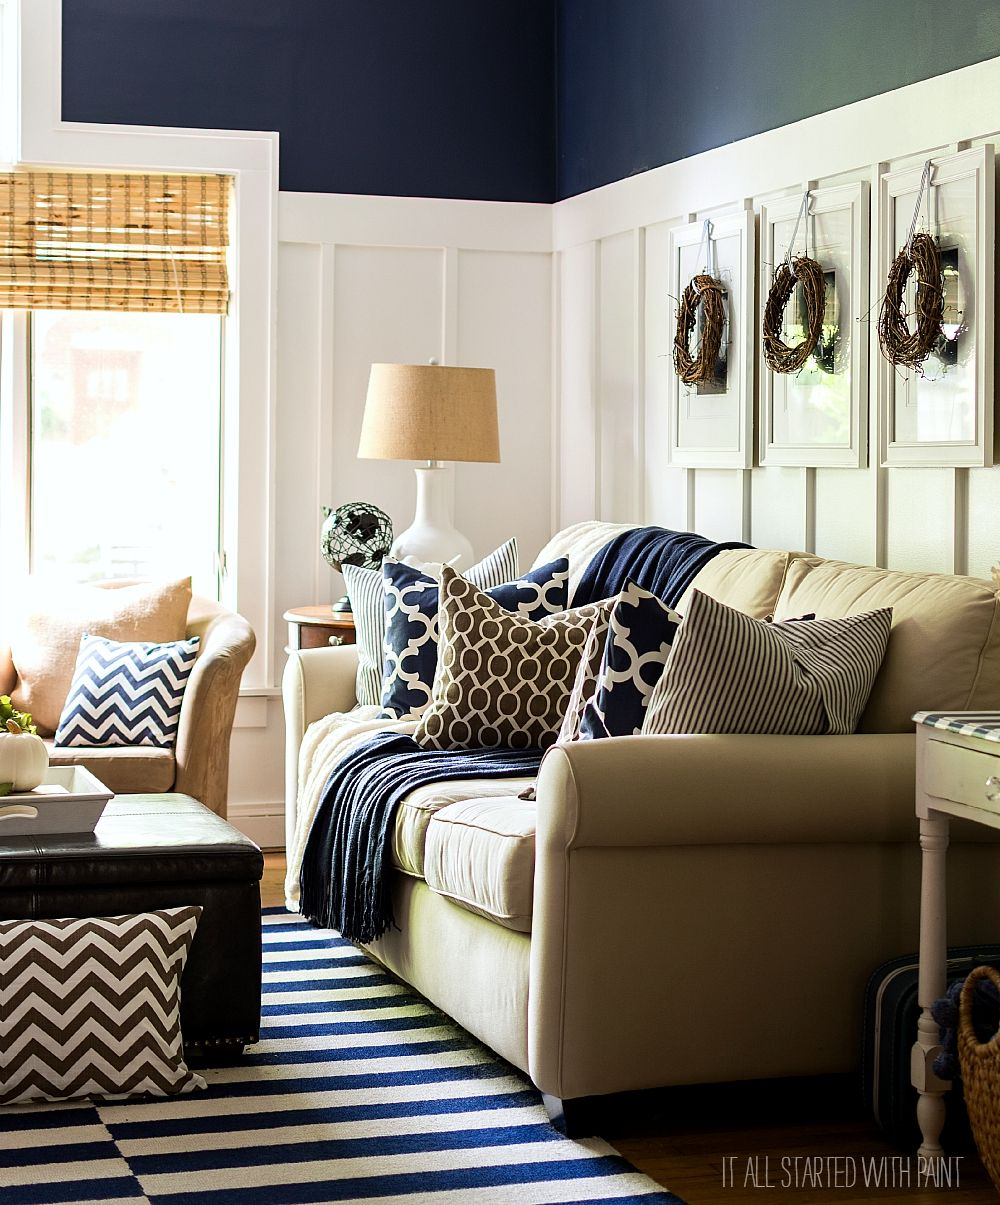 Fall Decor In Navy And Blue Favorite Finds Brown Blue Living